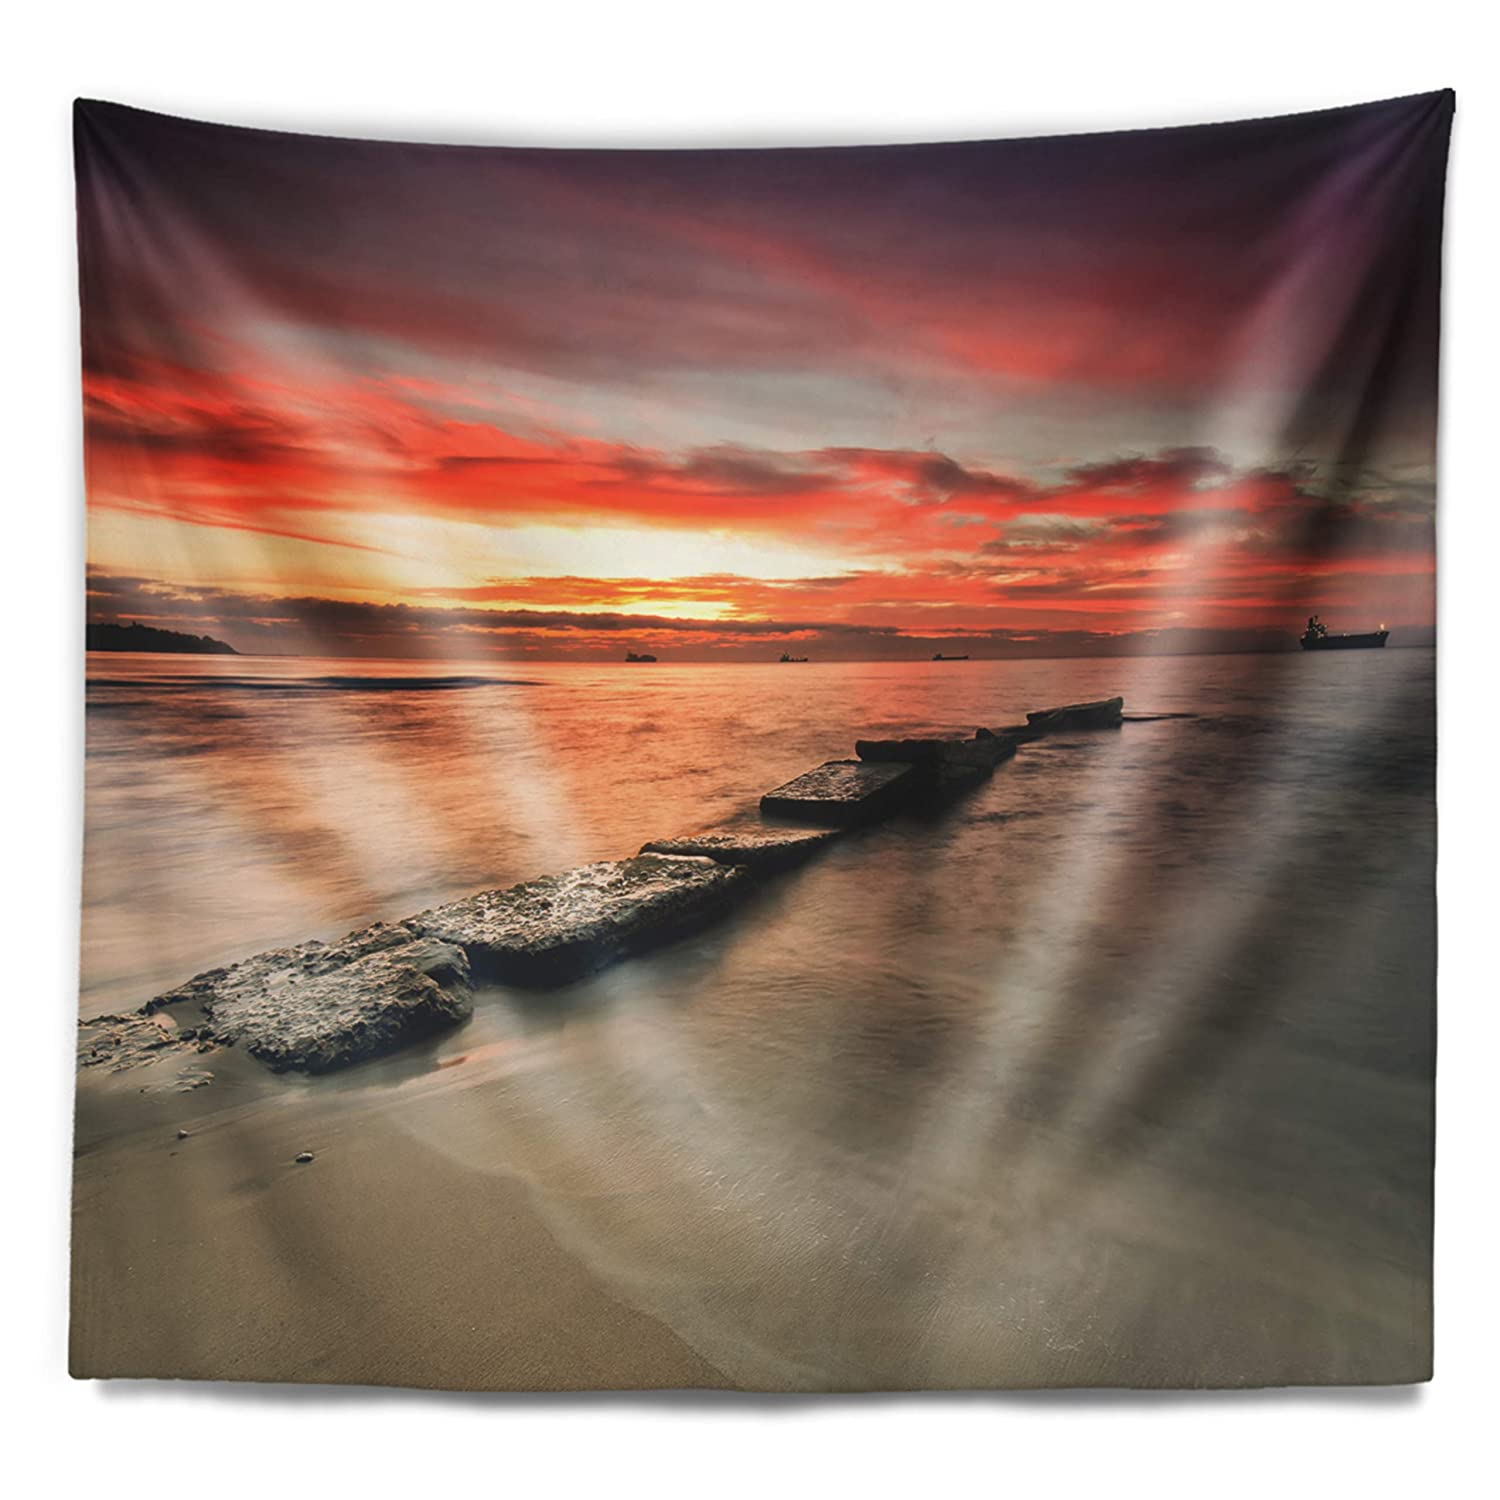 in x 68 in Designart TAP10637-80-68  Wonderful Sunrise on Black Ocean Beach Photo Blanket D/écor Art for Home and Office Wall Tapestry x Large 80 in